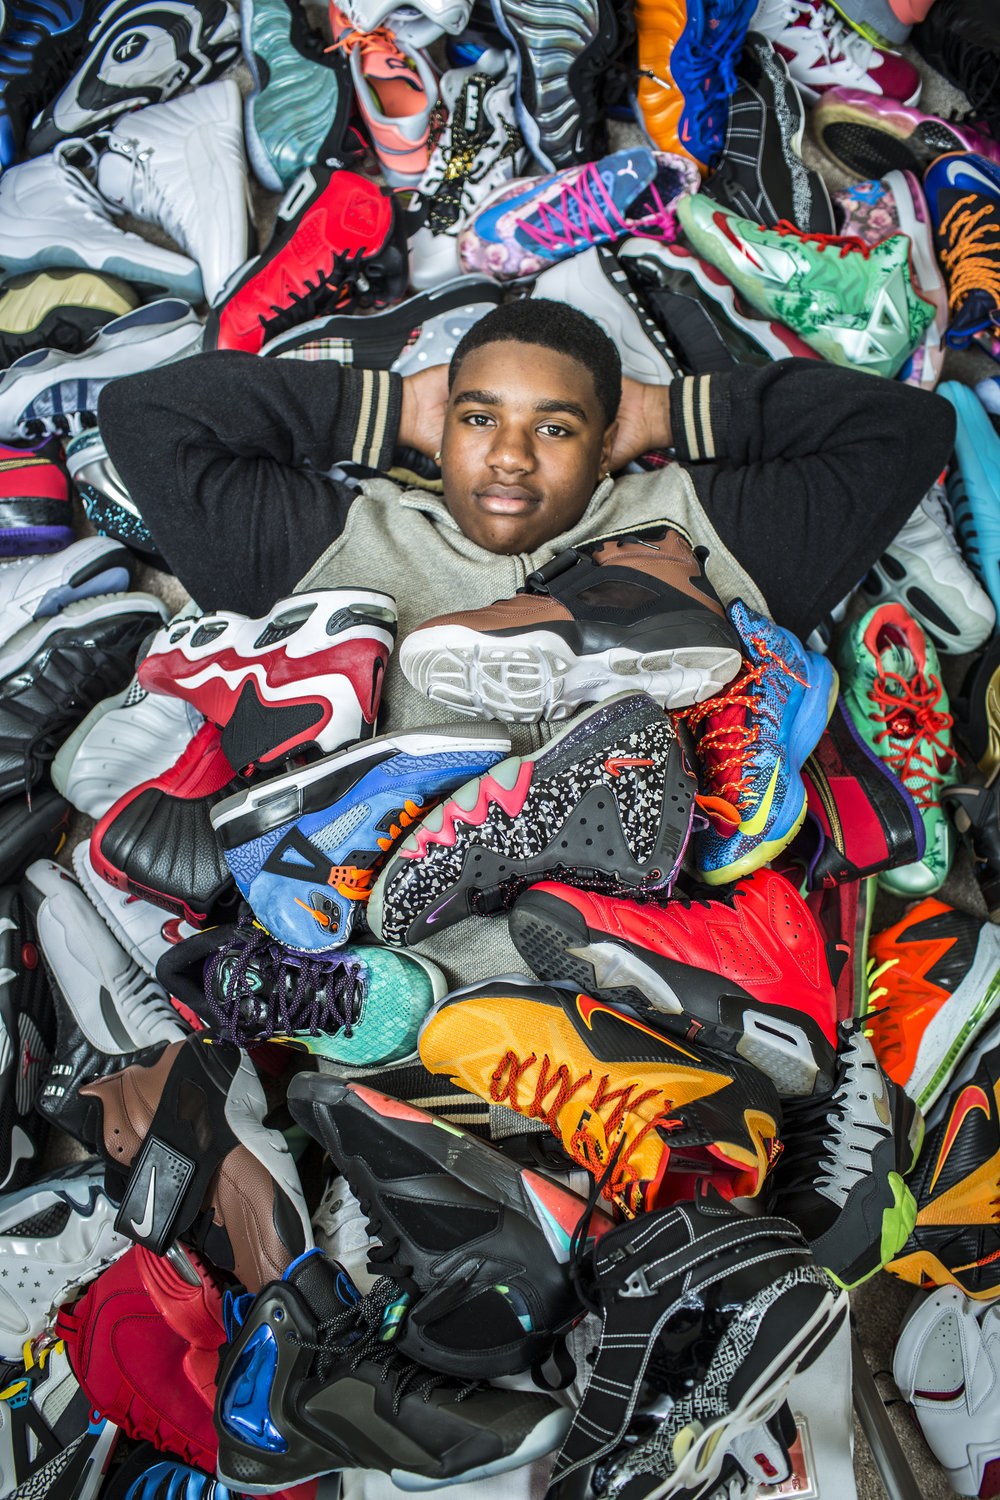 Sneakerhead Alonzo A. Moore, Jr. and just a portion of his sneaker collection, Thursday, Dec. 15, 2016 in Antioch, CA.